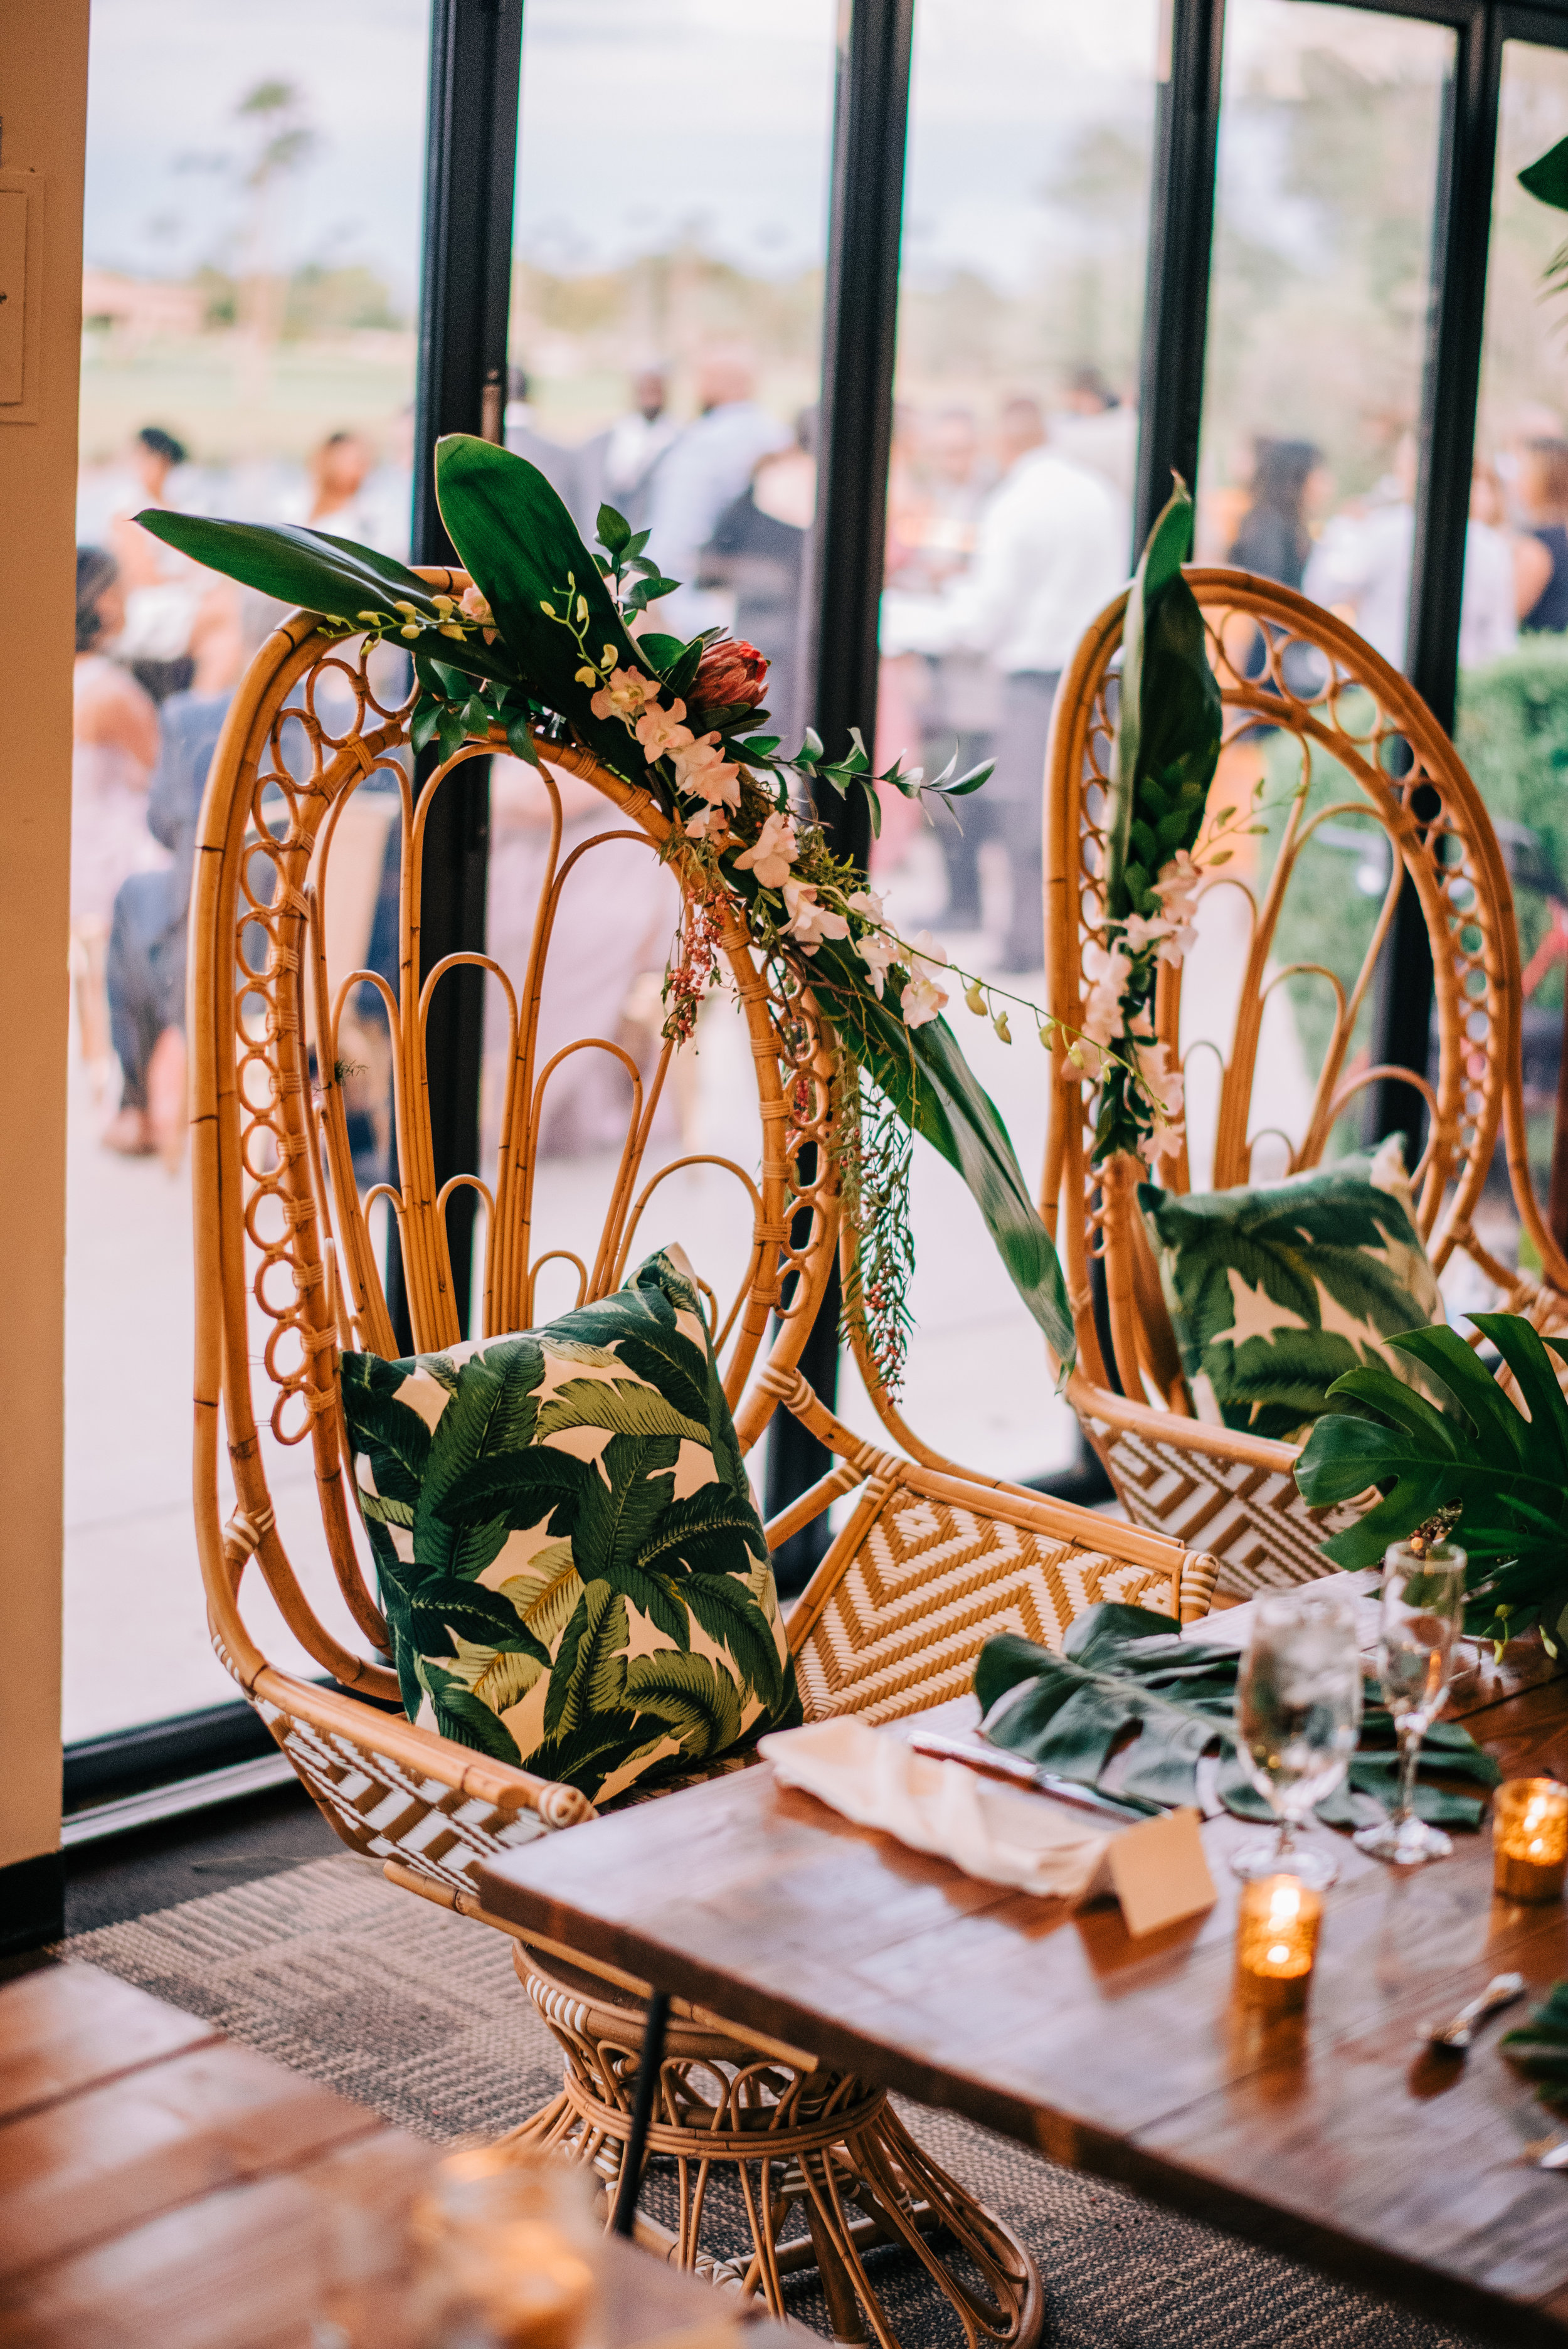 26 bride groom reception seating custom bride groom chairs tropical theme furniture wedding reception flowers on wedding chair Life Design Events photos by Josh Snyder Photography.jpg